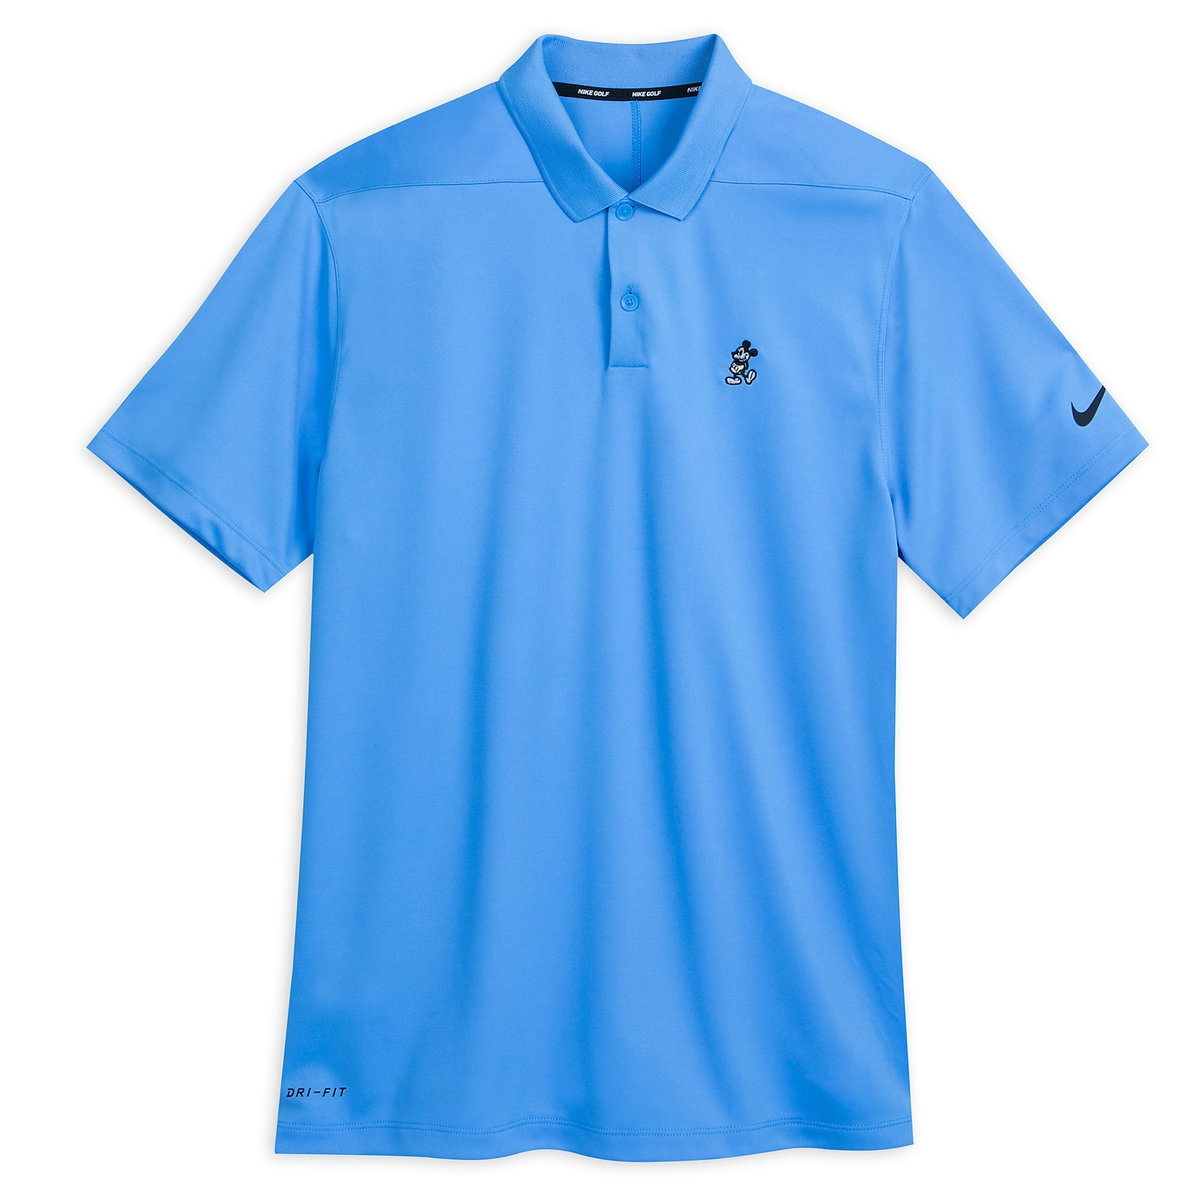 8b34013a Product Image of Mickey Mouse Performance Polo Shirt for Men by Nike Golf -  Light Blue